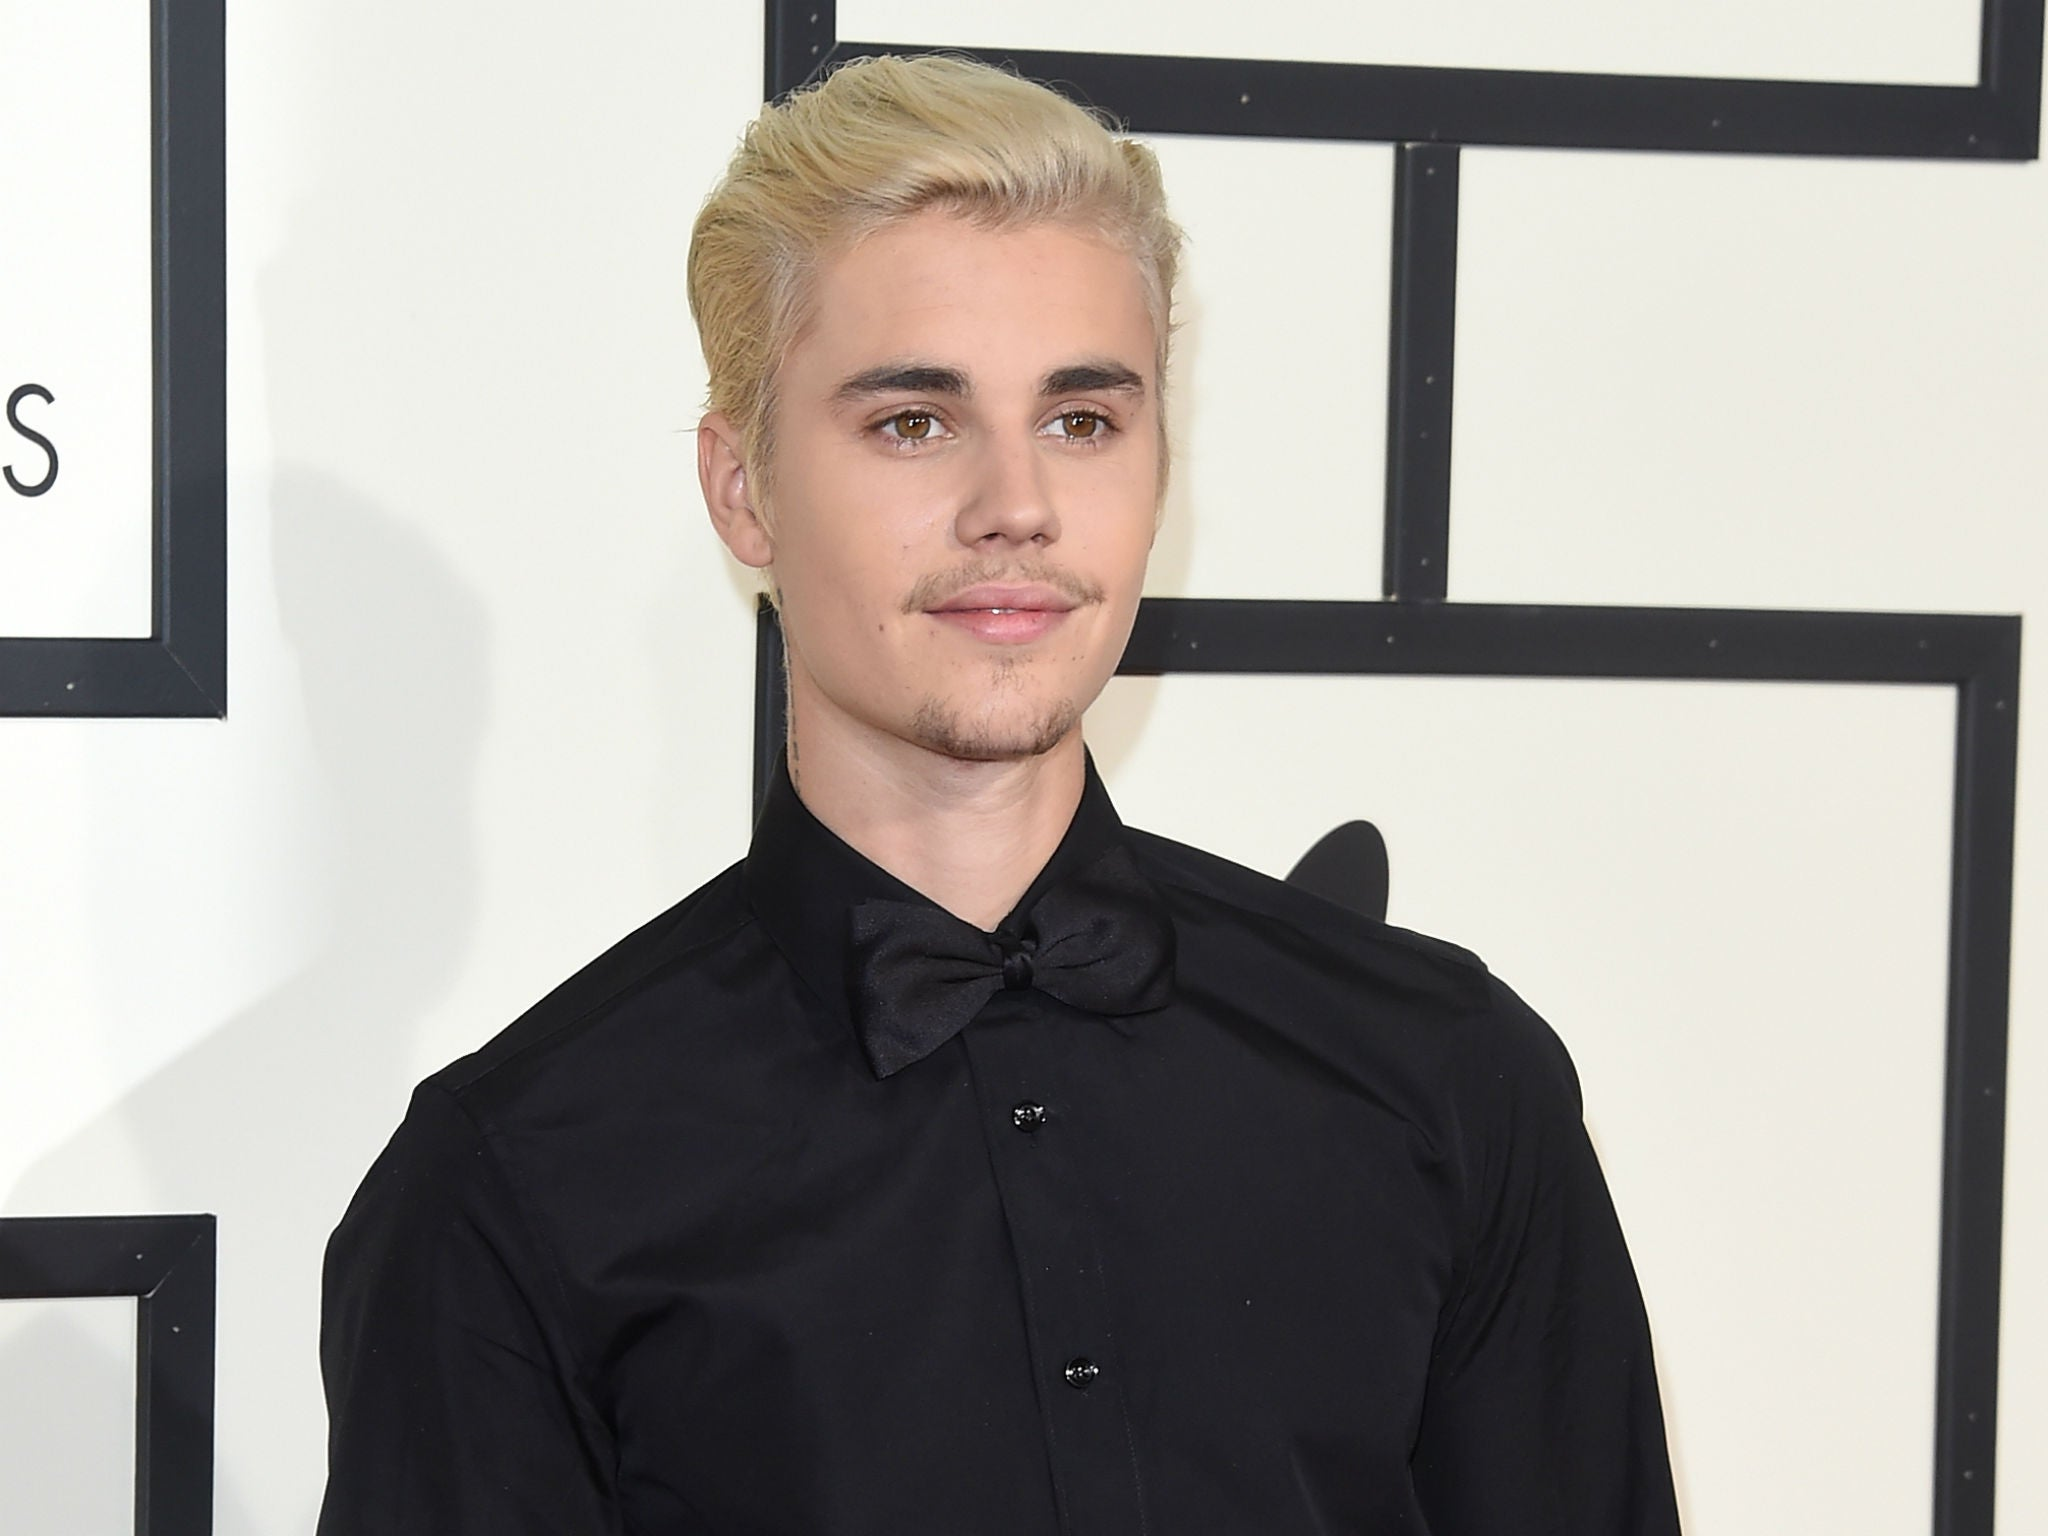 Justin Bieber turns 22 The singers most inane quotes The